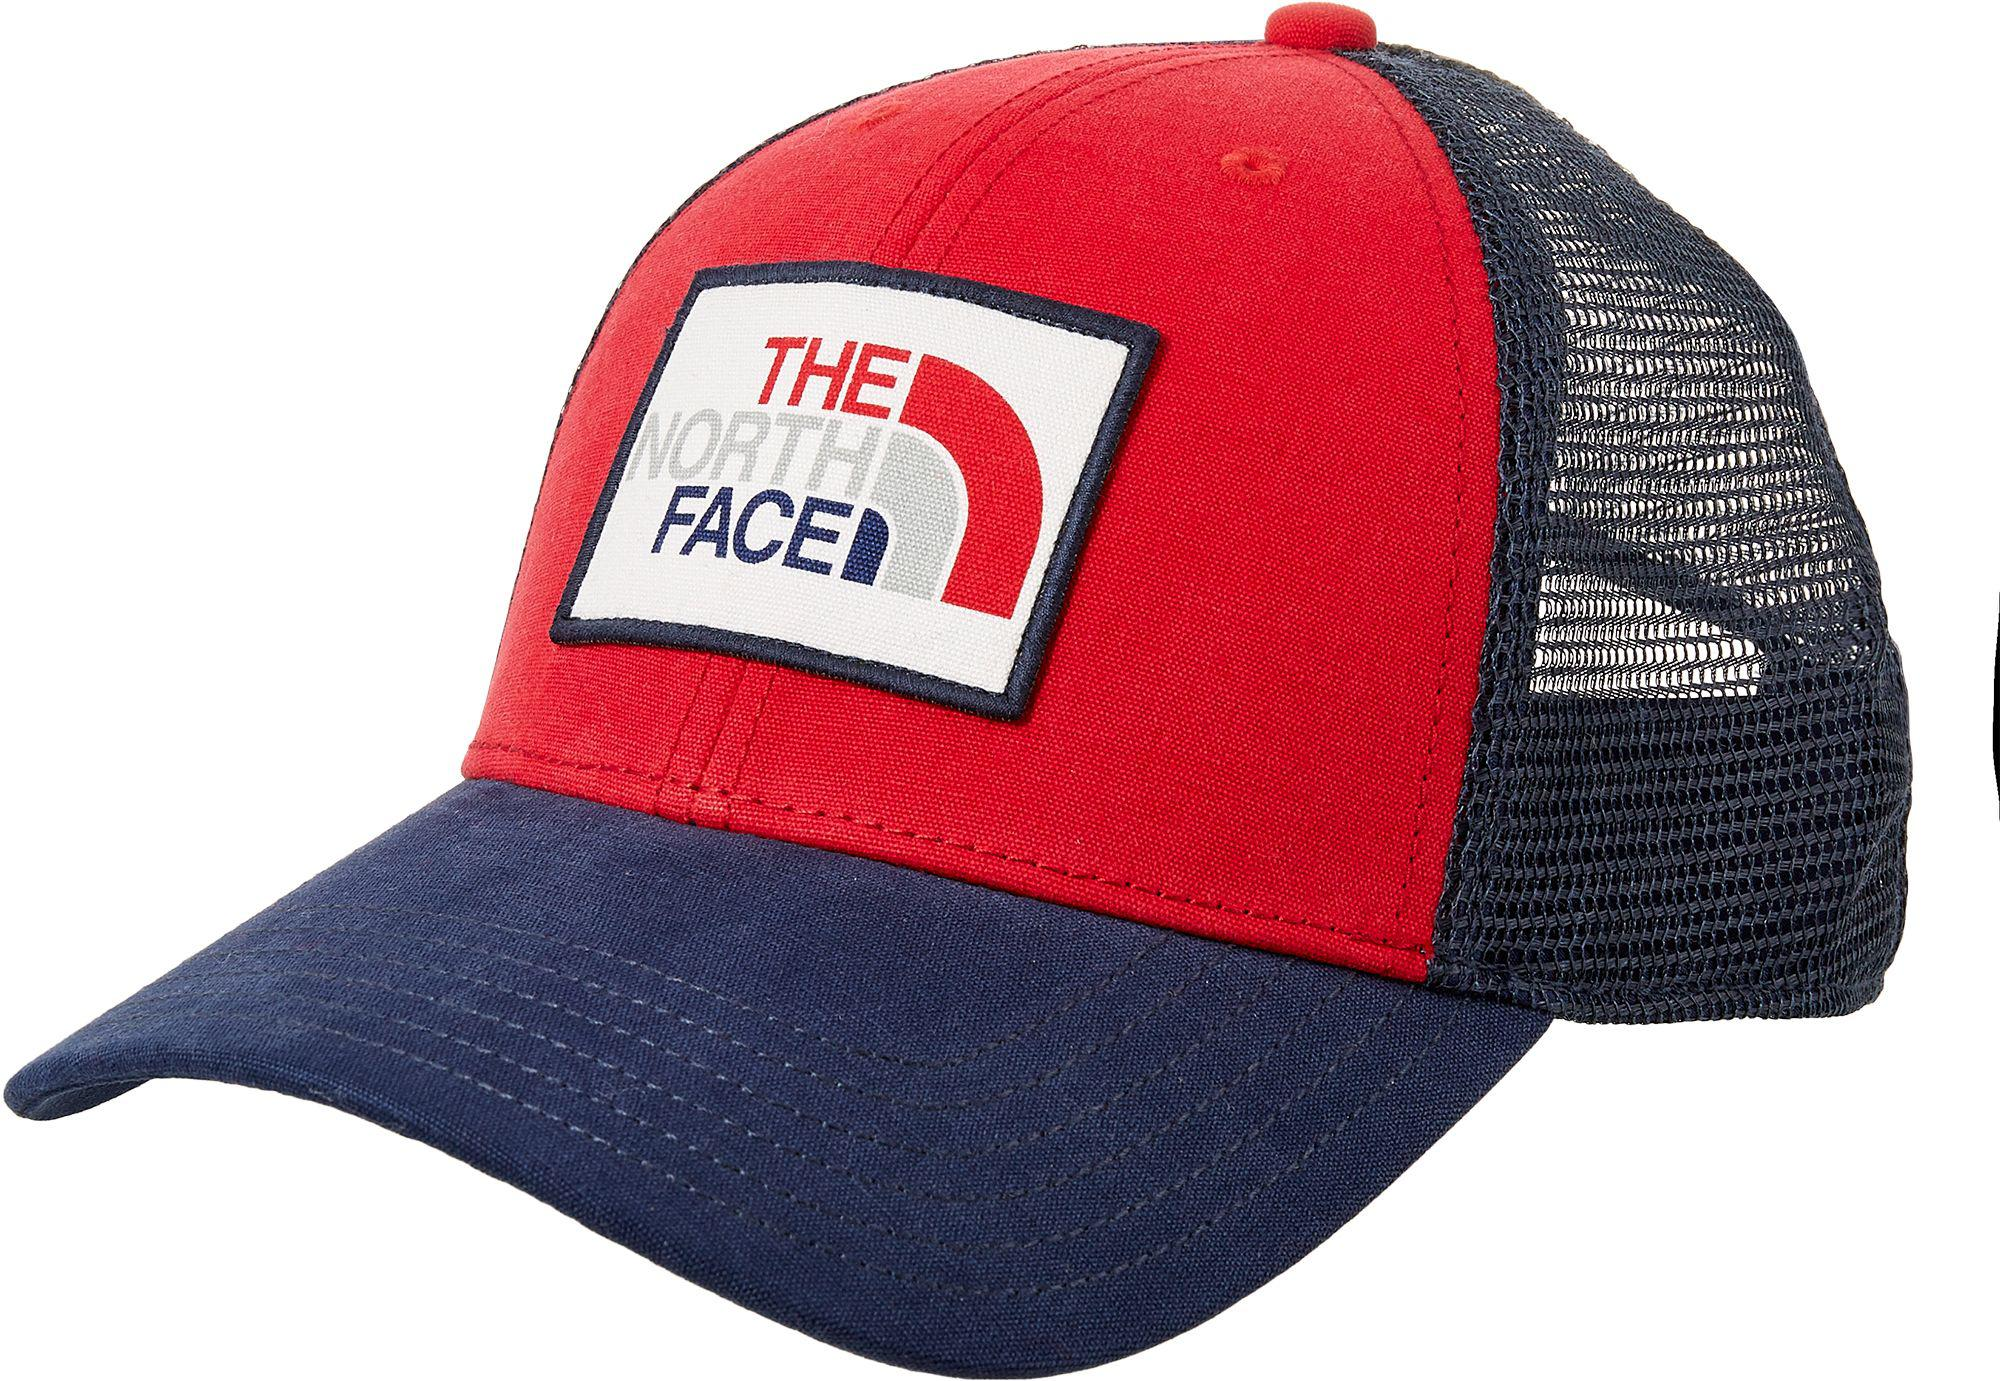 Lyst - The North Face Uni Trucker Hat in Blue for Men 4b4dee9f68e1